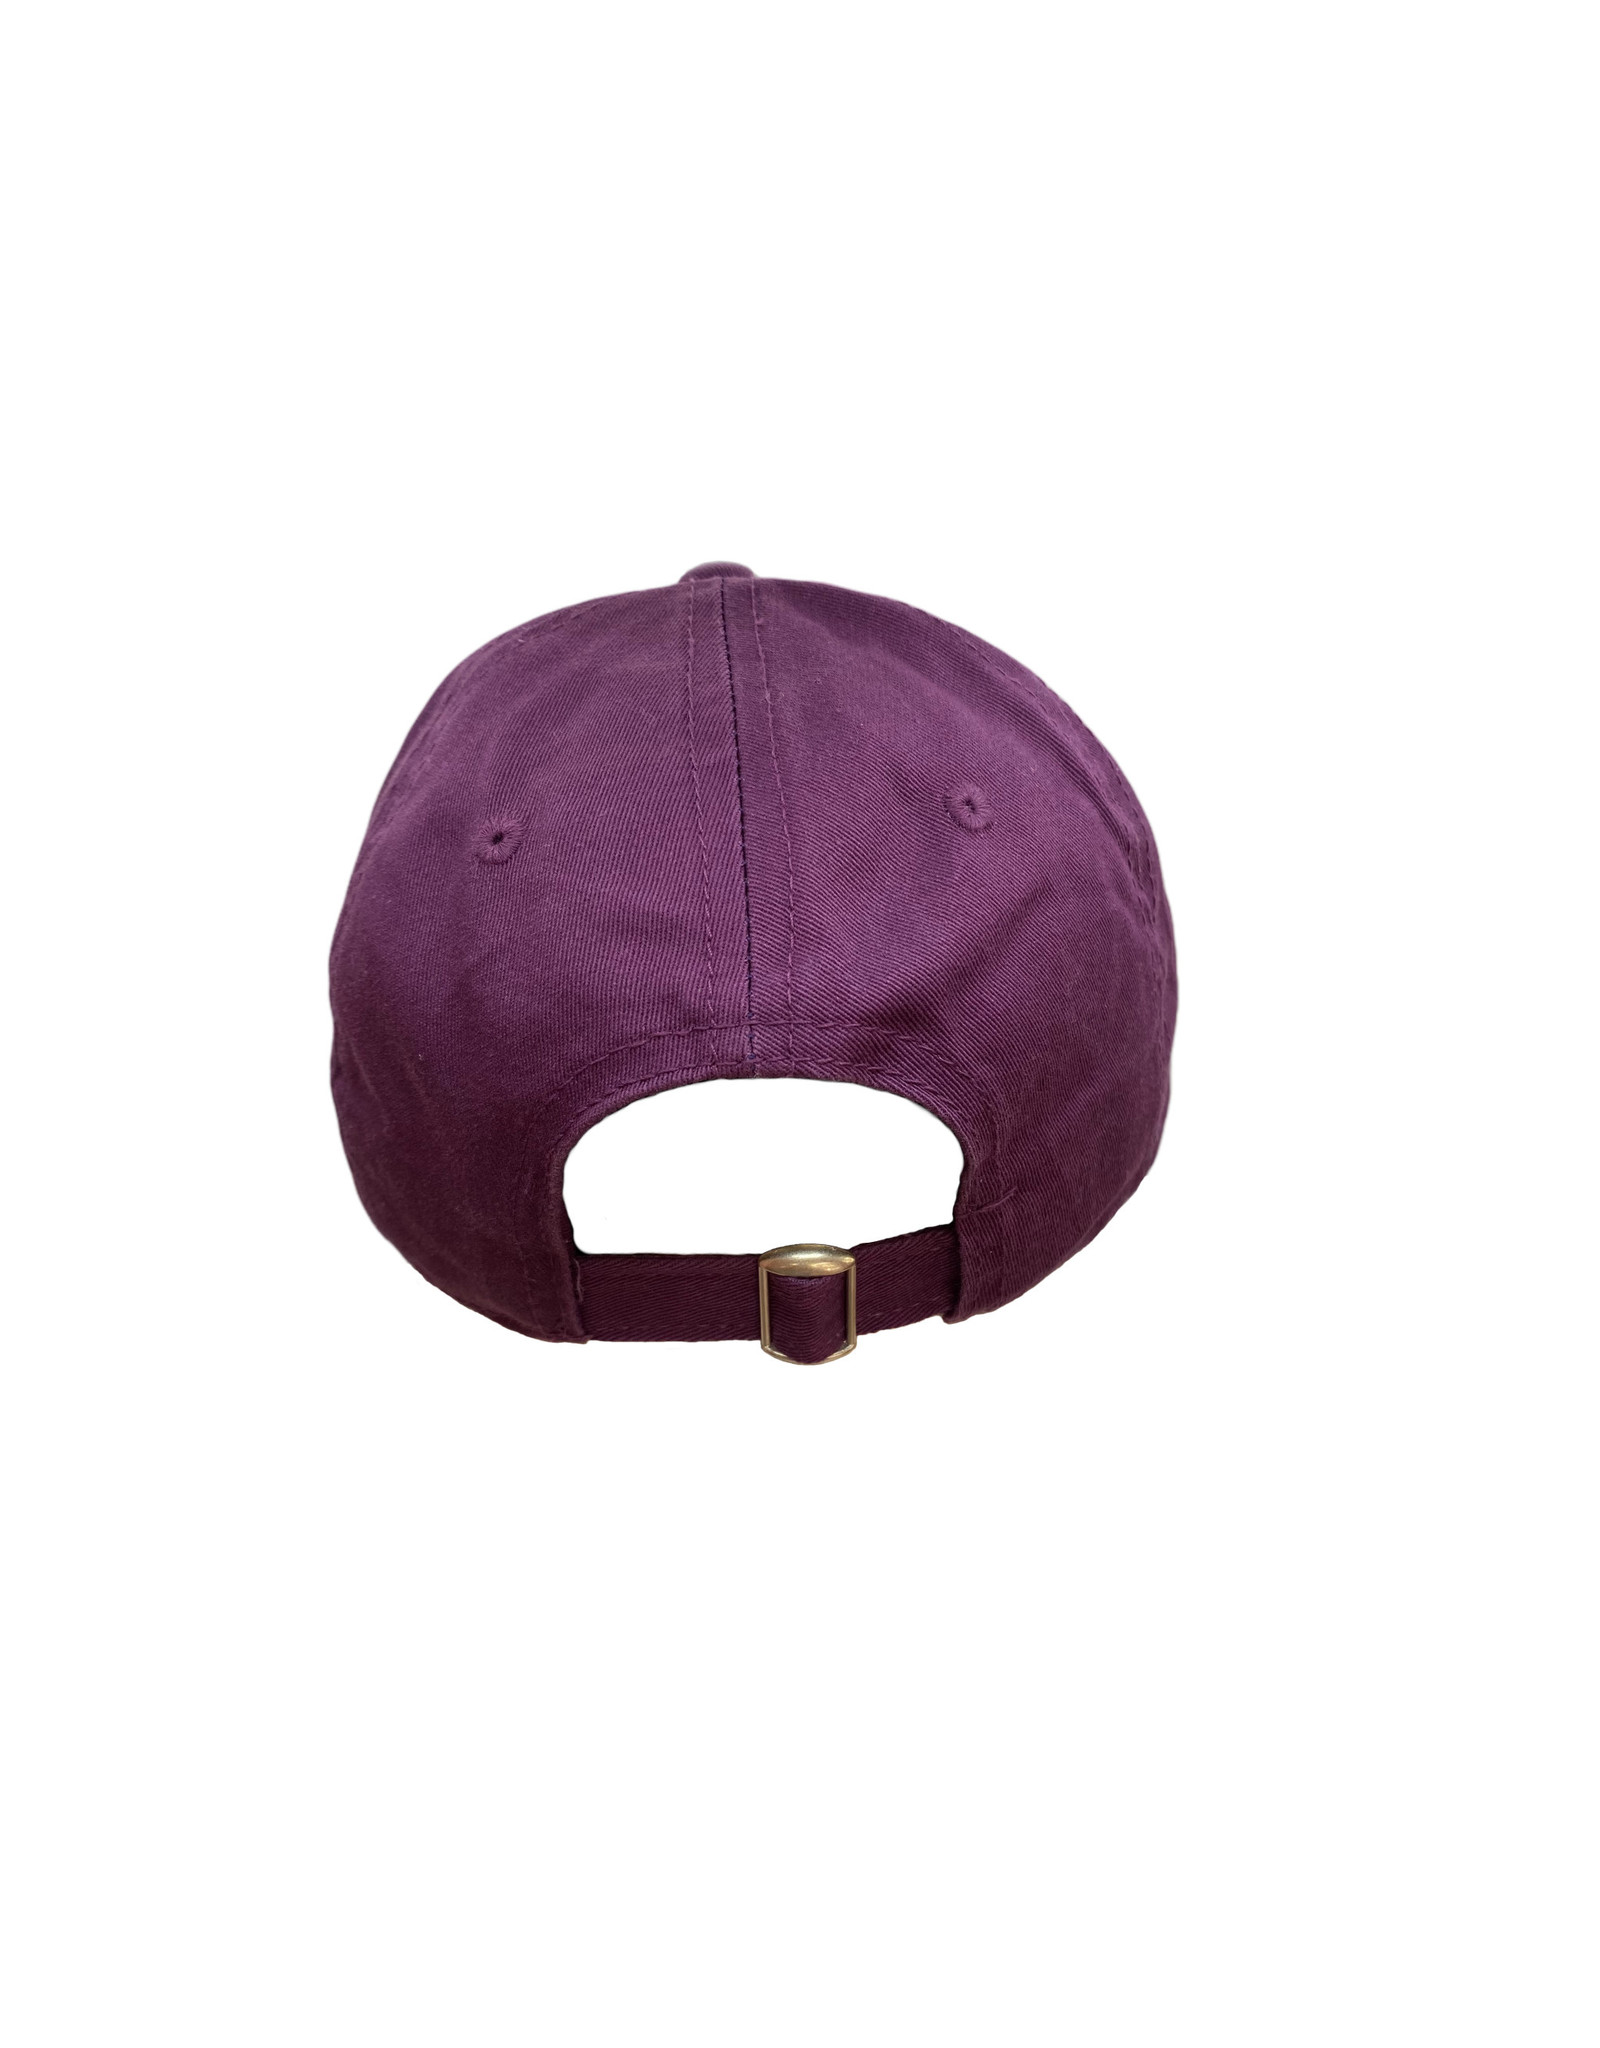 REHOBOTH LIFESTYLE CLASSIC COTTON BEACH HAT ADJUSTABLE OS BERRY OARS